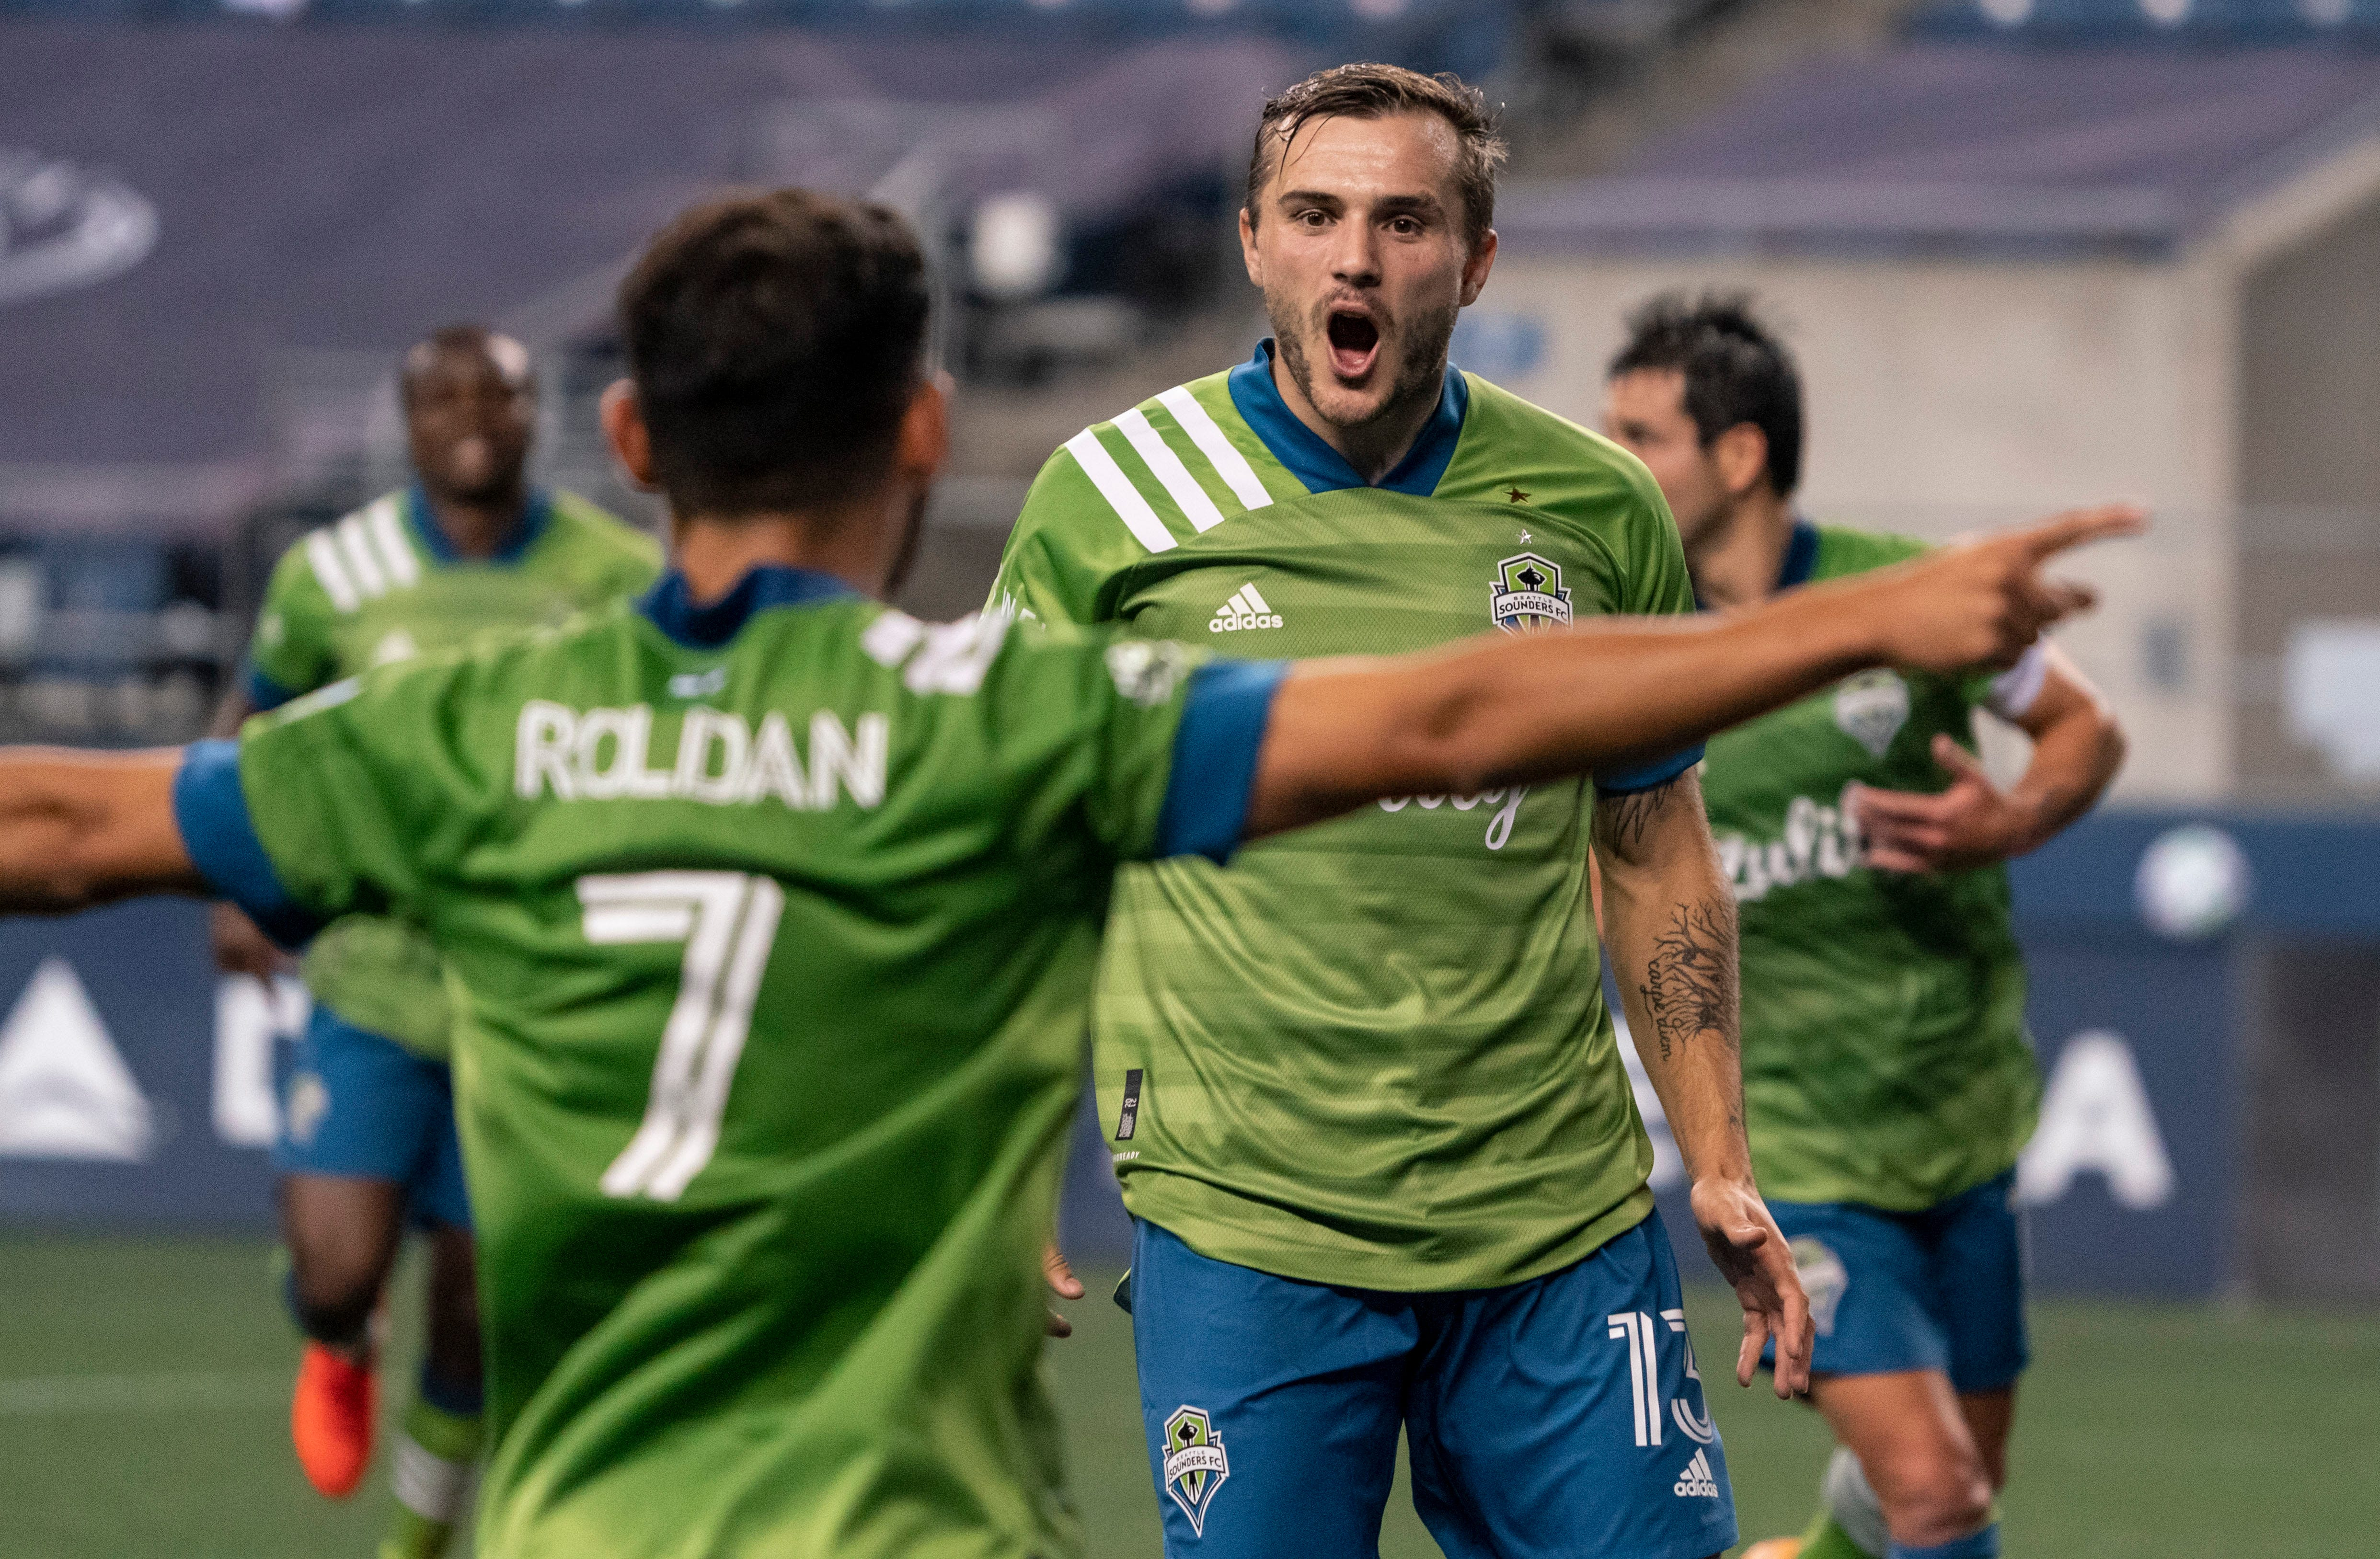 MLS Cup playoffs: Who will be 2020 champ? Which teams are postseason darkhorse contenders?